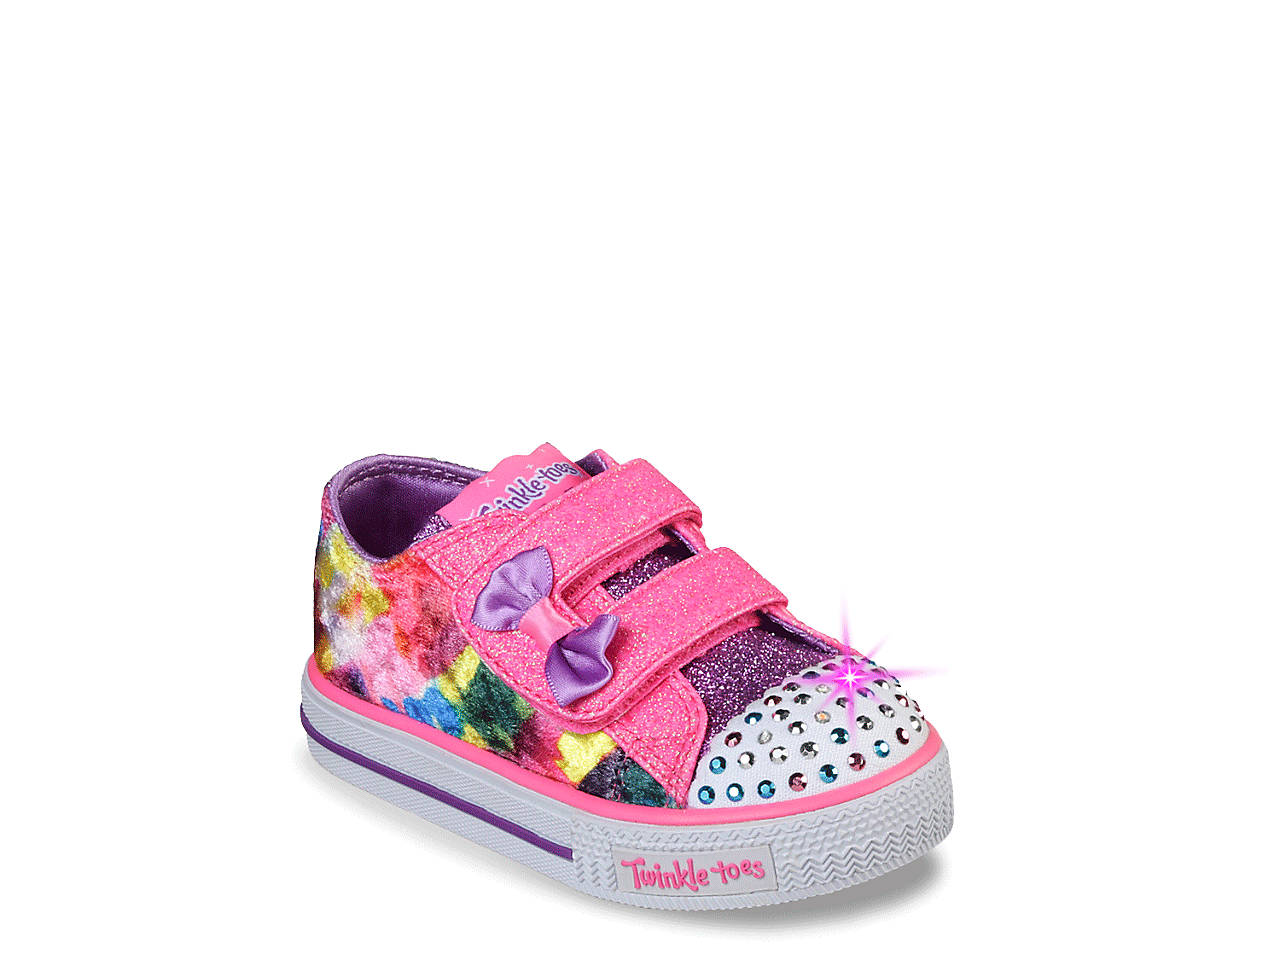 b10a9ac81c1c Skechers Twinkle Toes Tye Dye Dazzle Toddler Light-Up Sneaker Kids ...